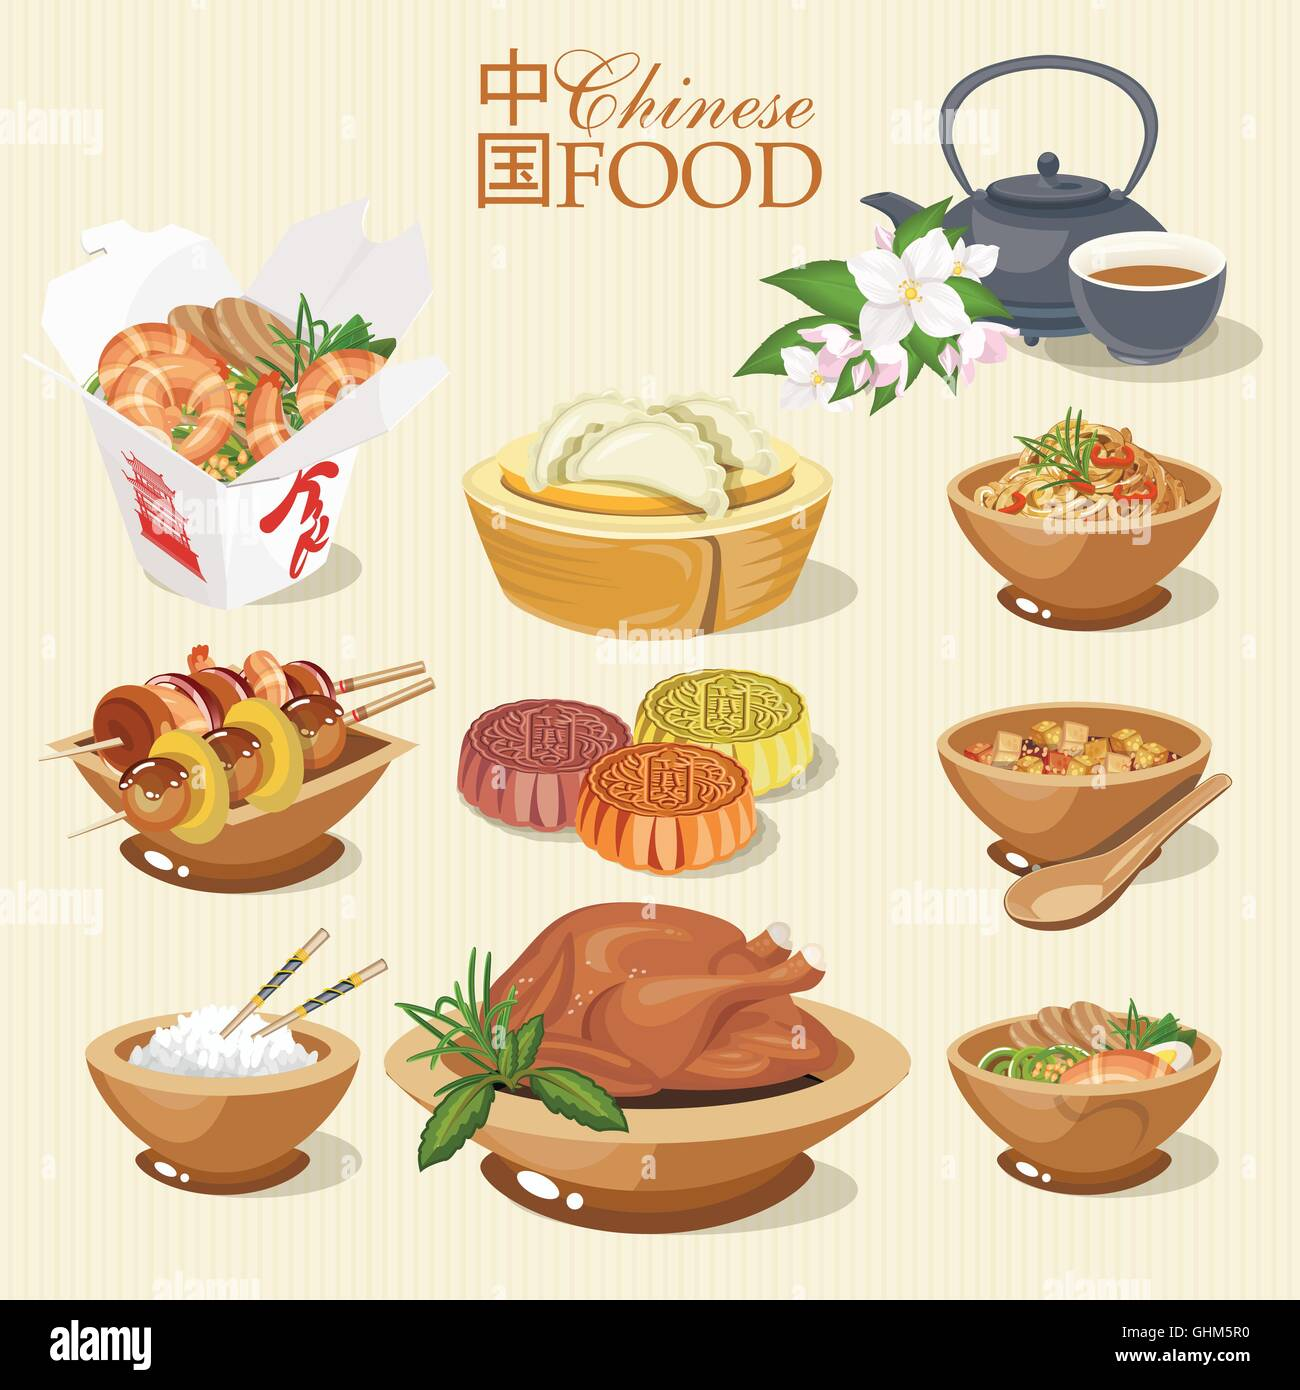 Vector Set With Chinese Food Chinese Street Restaurant Or Homemade Stock Vector Image Art Alamy